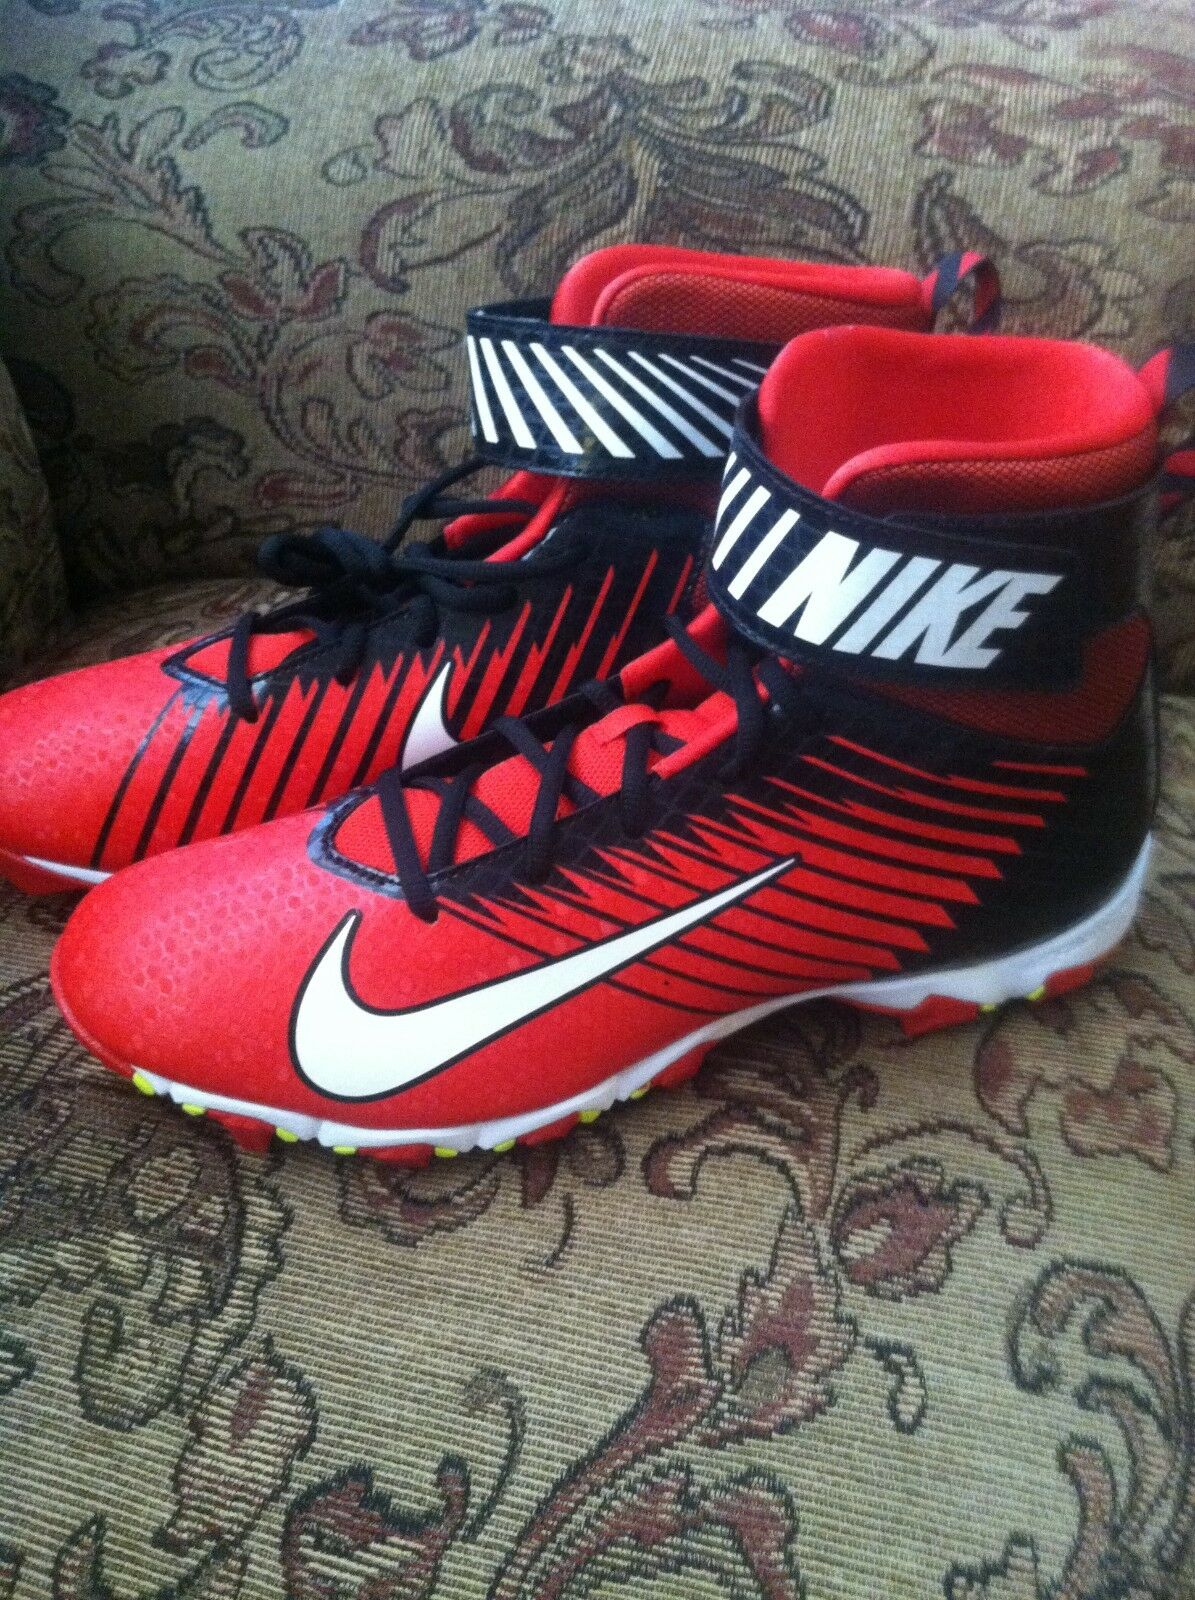 Wild casual shoes Nike Men's Strike Shark Football Cleats Shoes Red & Black New size 13